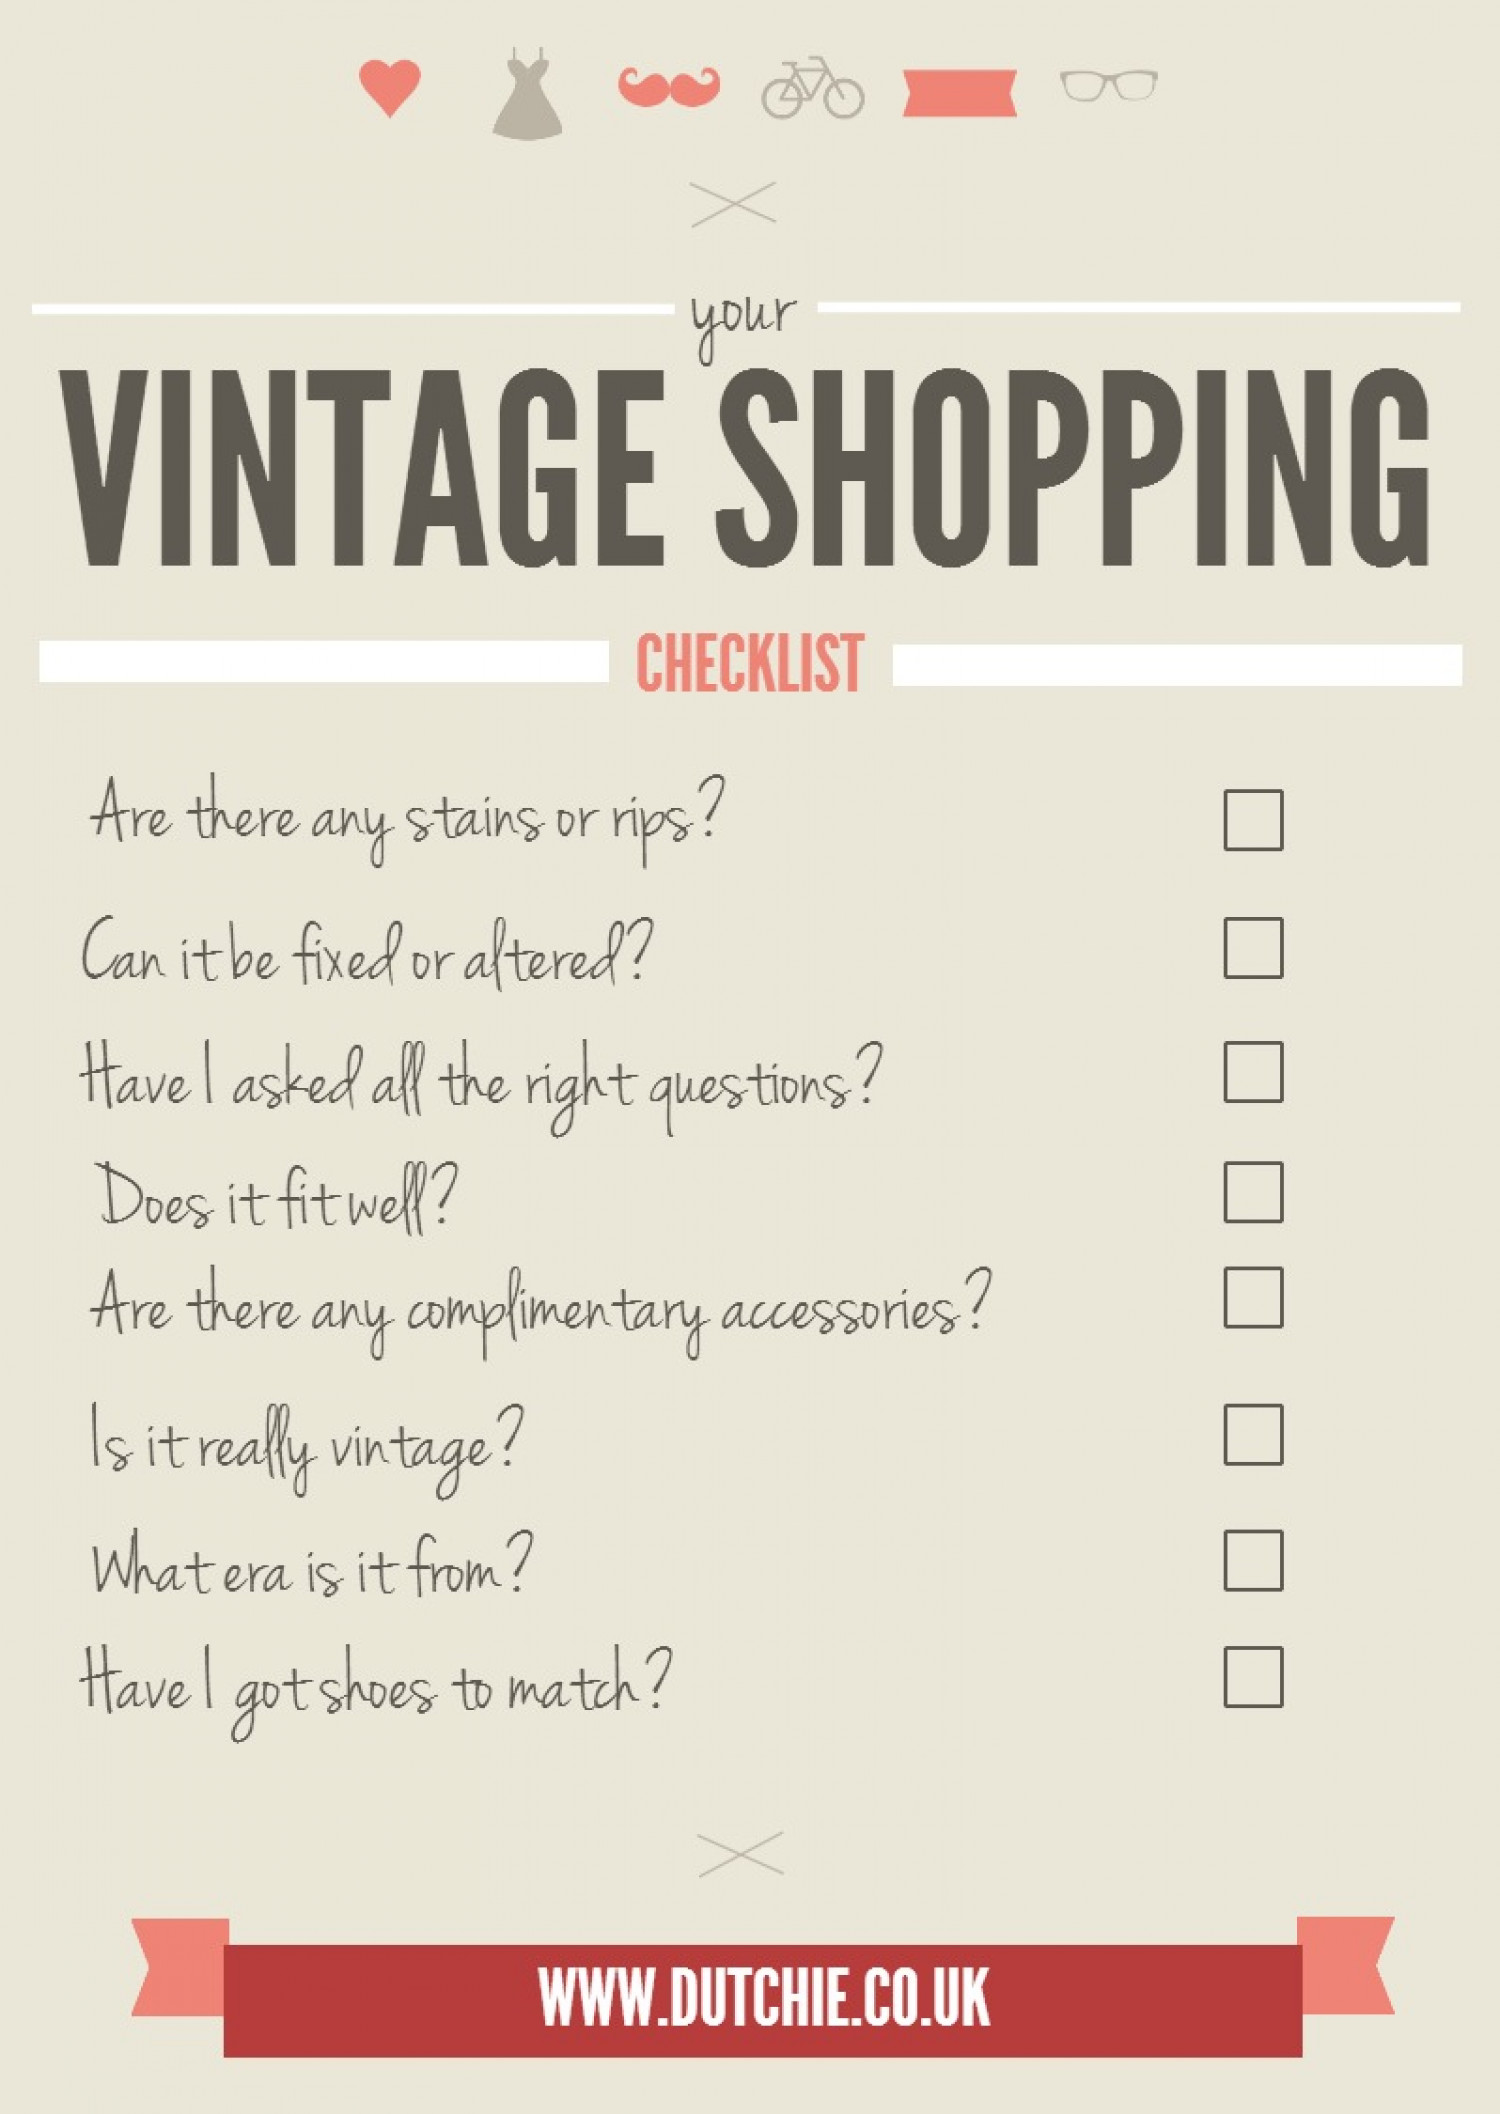 Your Vintage Shopping Checklist Infographic